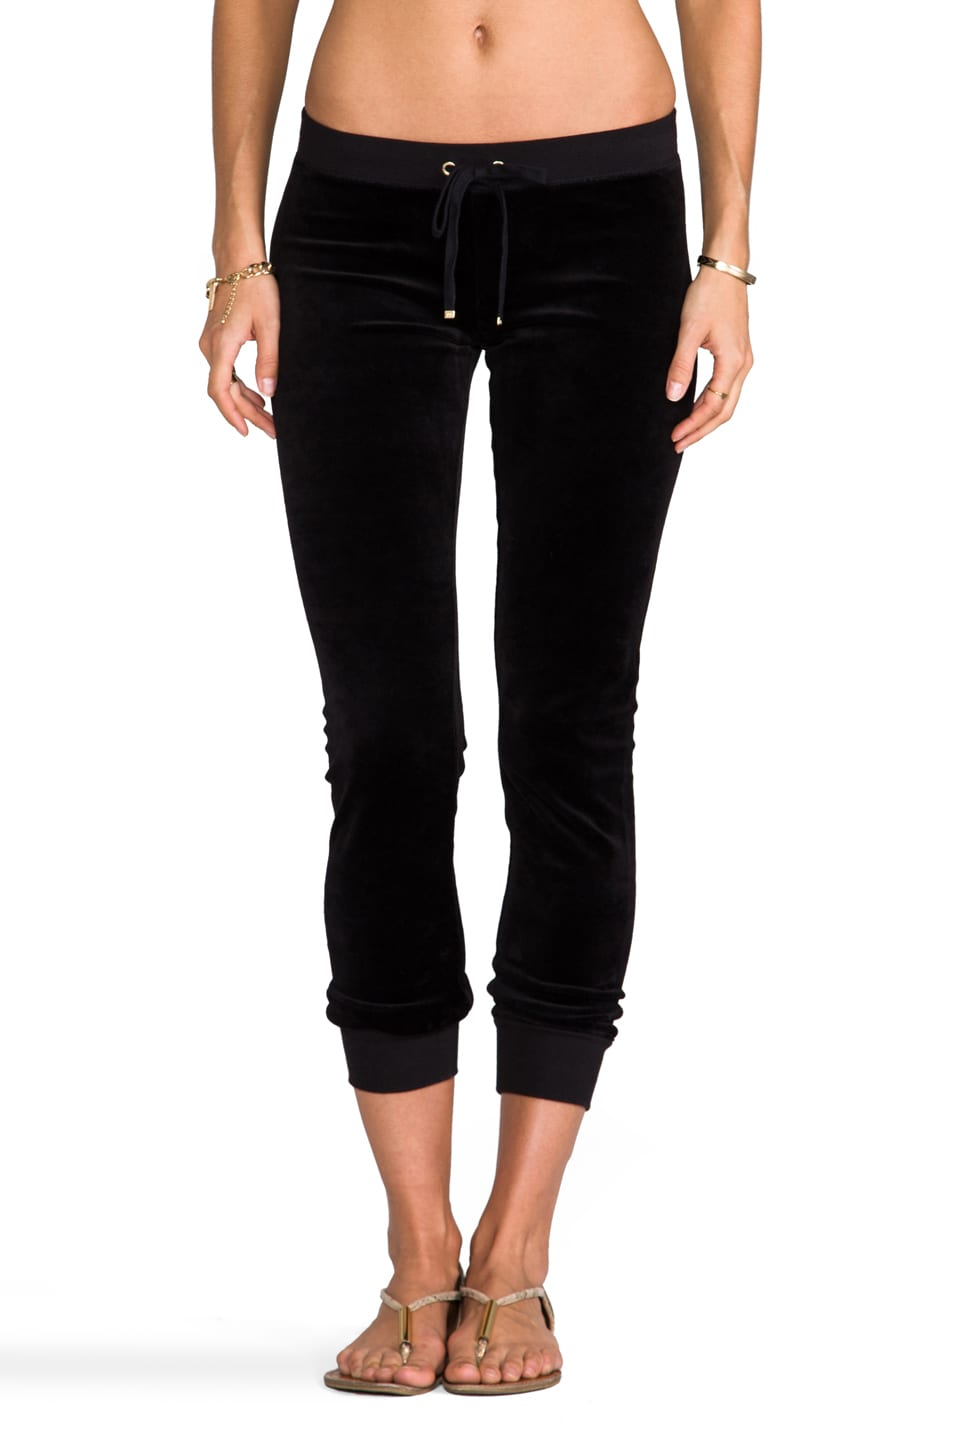 Juicy Couture Modern Track Pant in Black